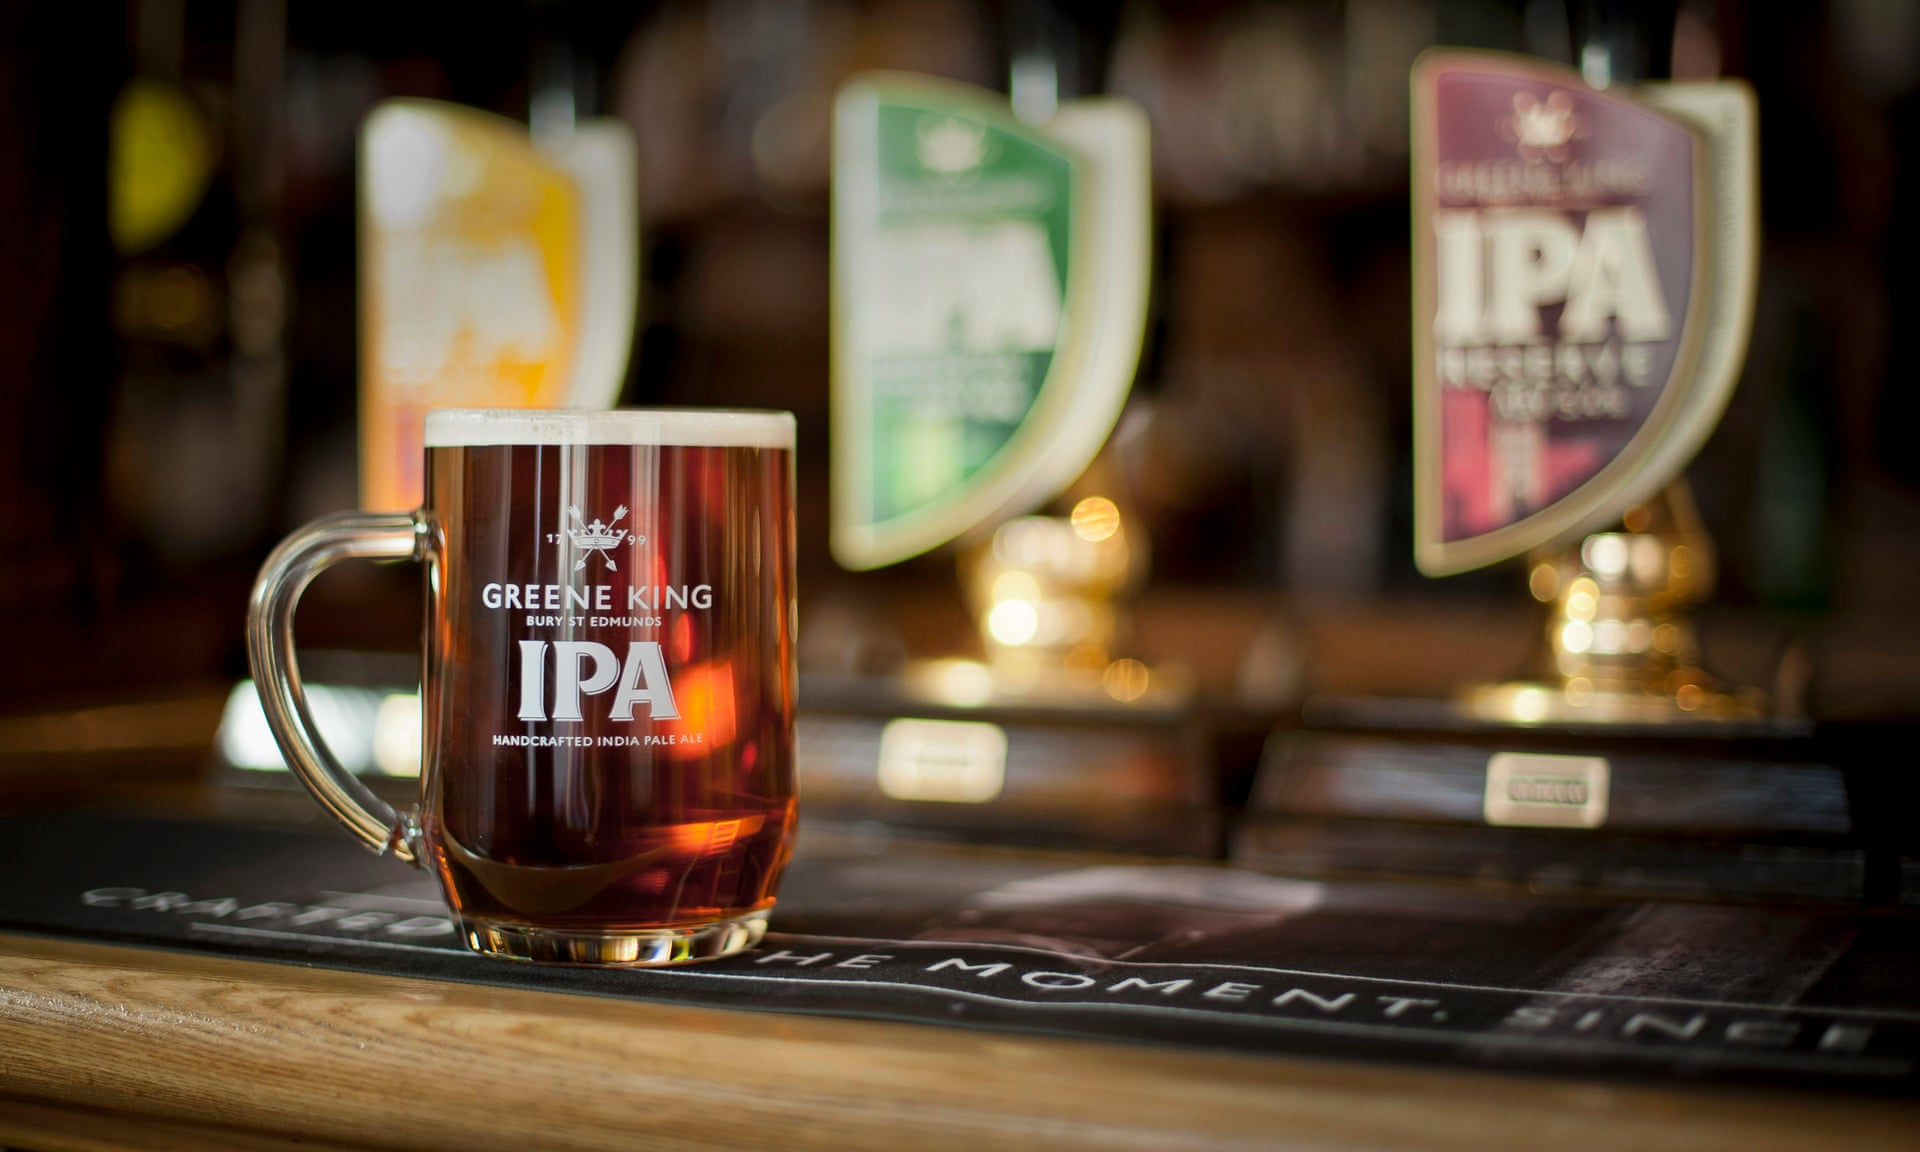 Greene King IPA in a glass at a Greene King pub, which will sell for £2.7 billion